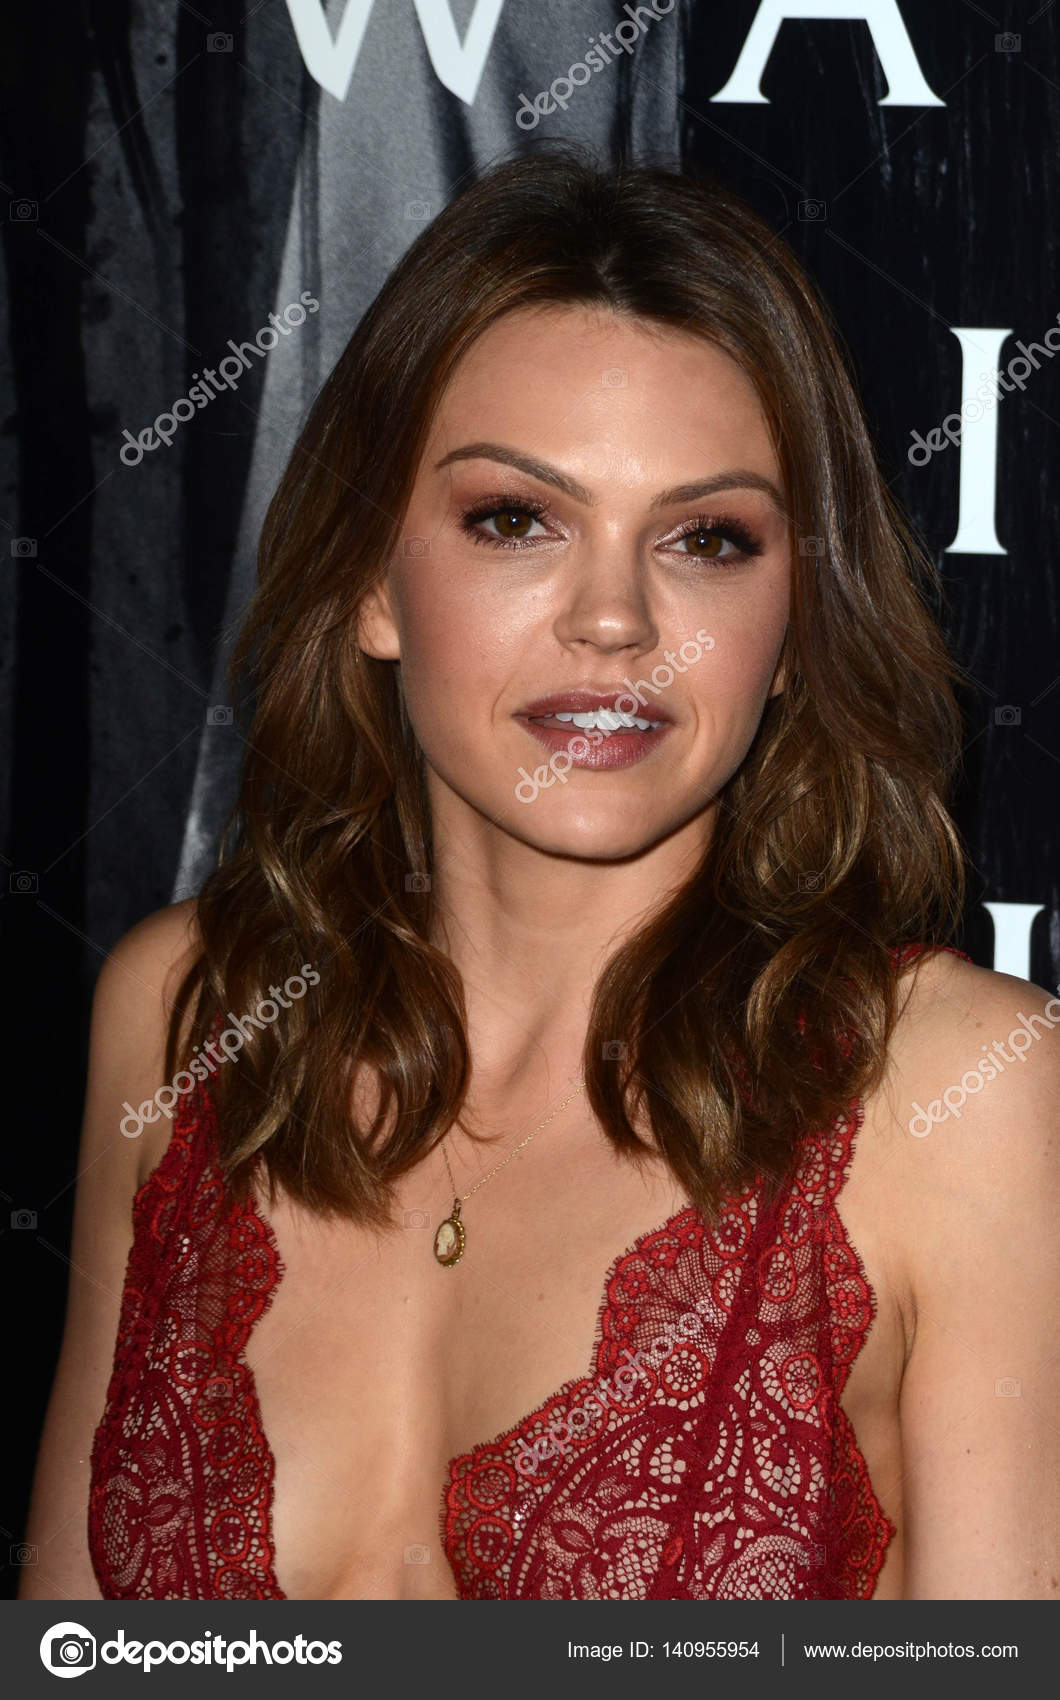 Pictures Aimee Teegarden nudes (62 photo), Sexy, Paparazzi, Boobs, braless 2019